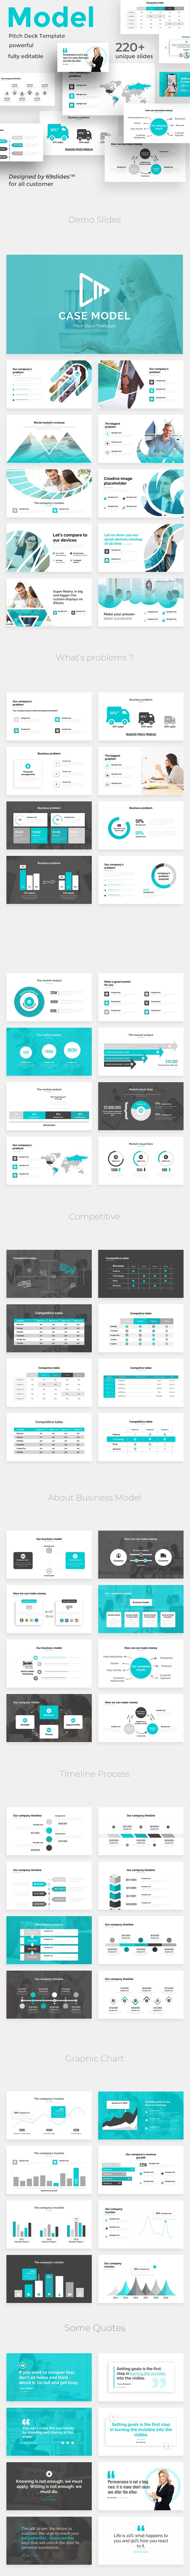 Case Model Pitch Deck Google Slide Template - Google Slides Presentation Templates